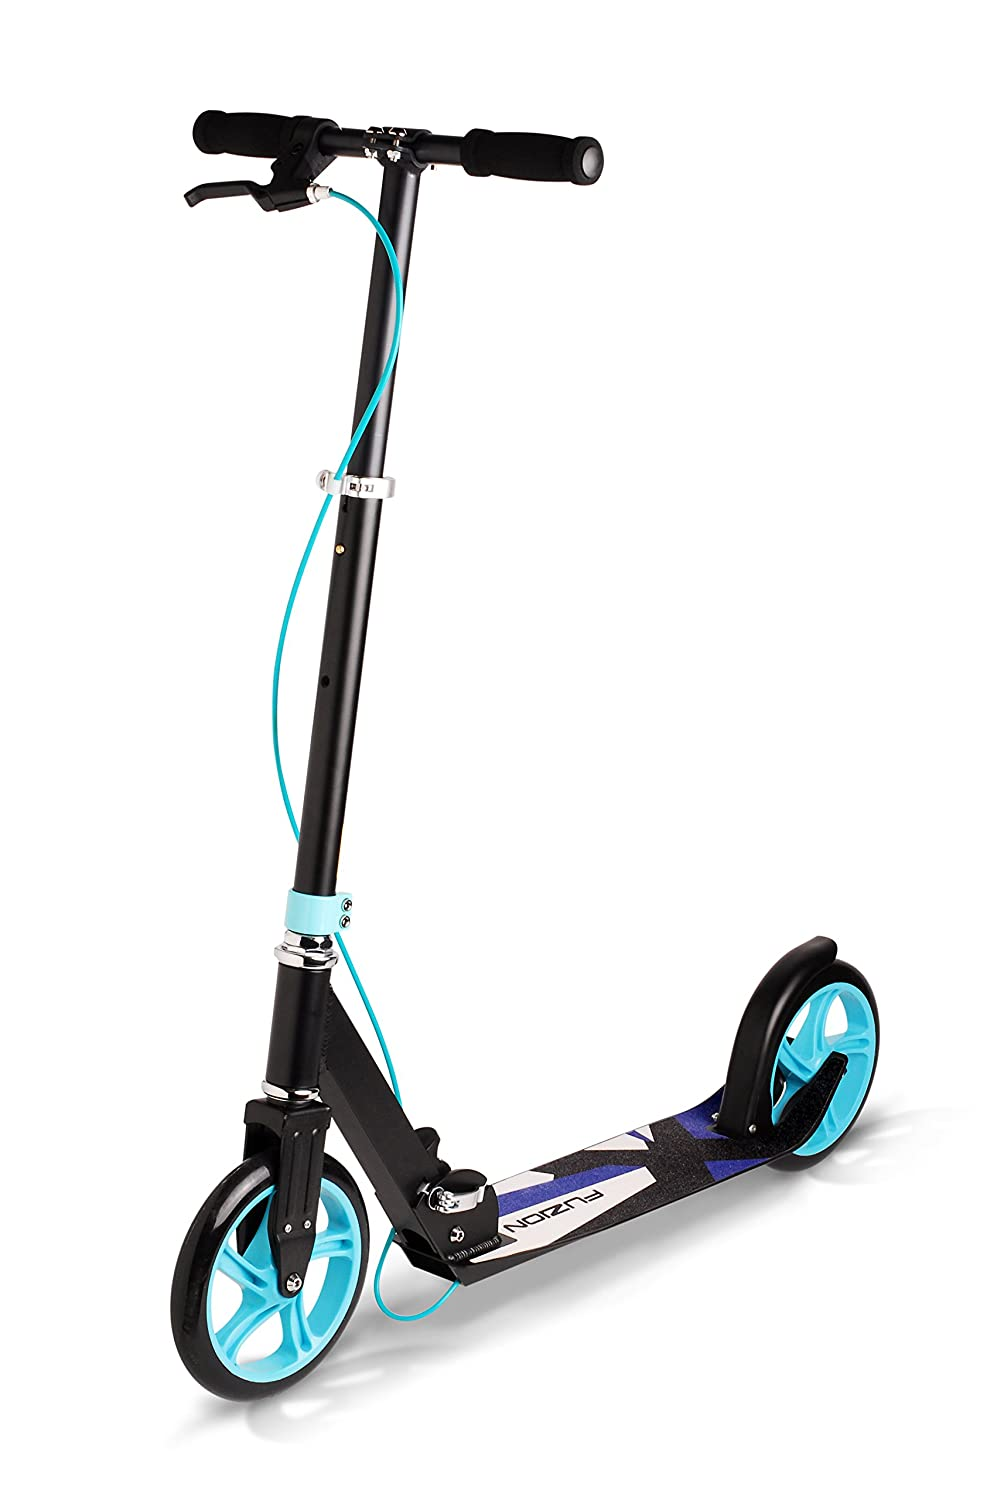 Top 10 Best Kick Scooter For Commuting - Buyer's Guide 3